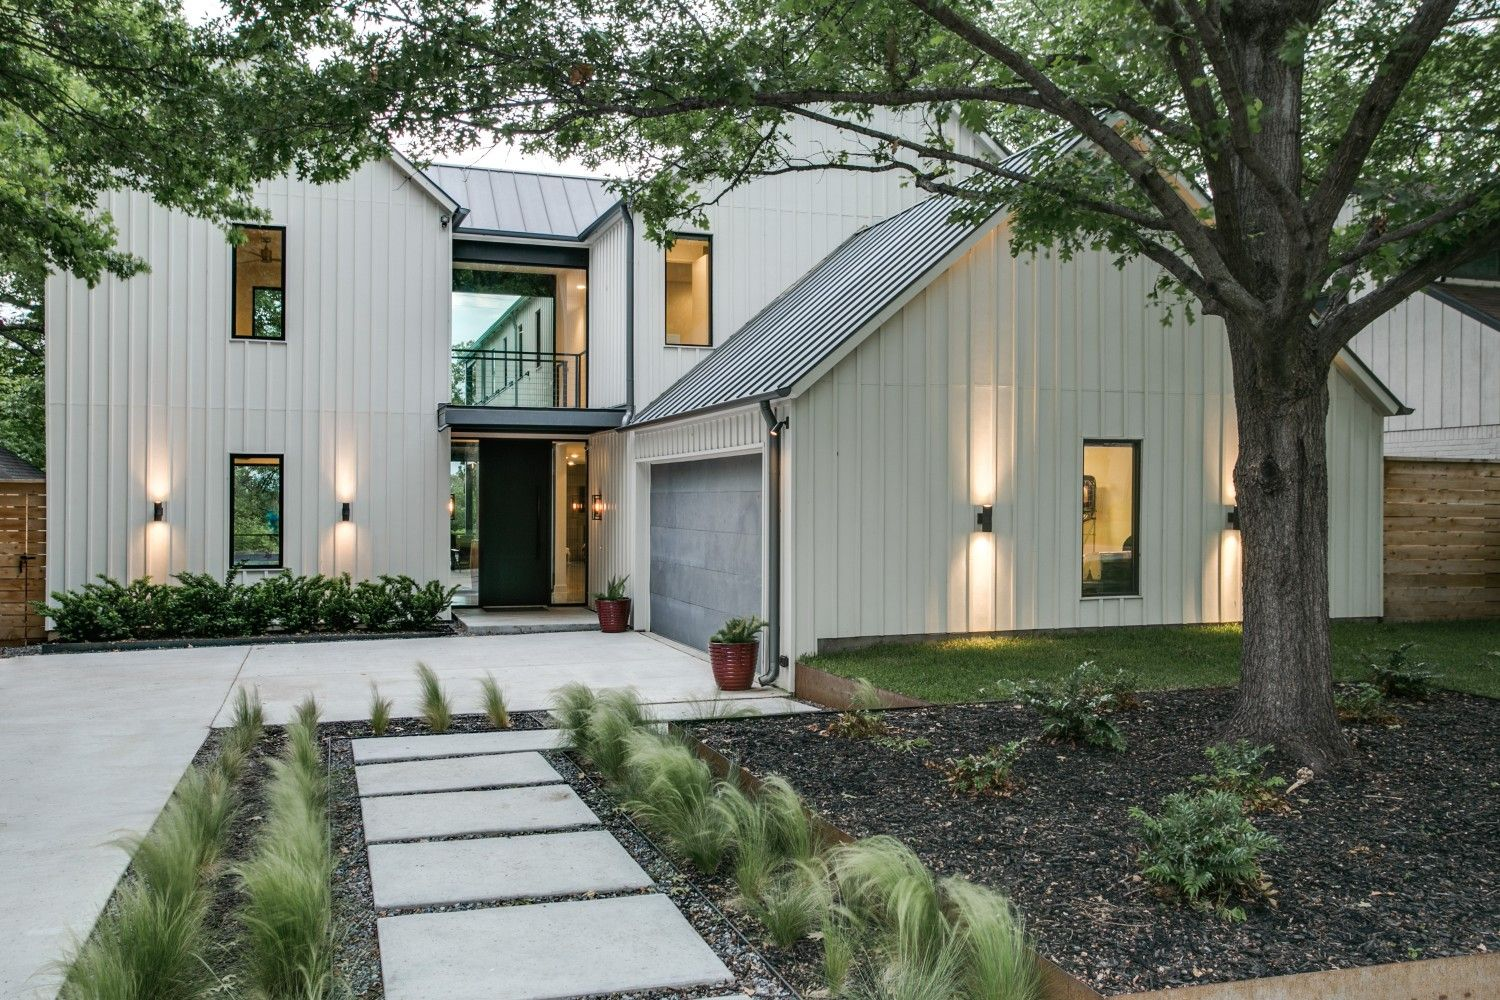 Attractive Exterior Wall Design Using Board And Batten Siding